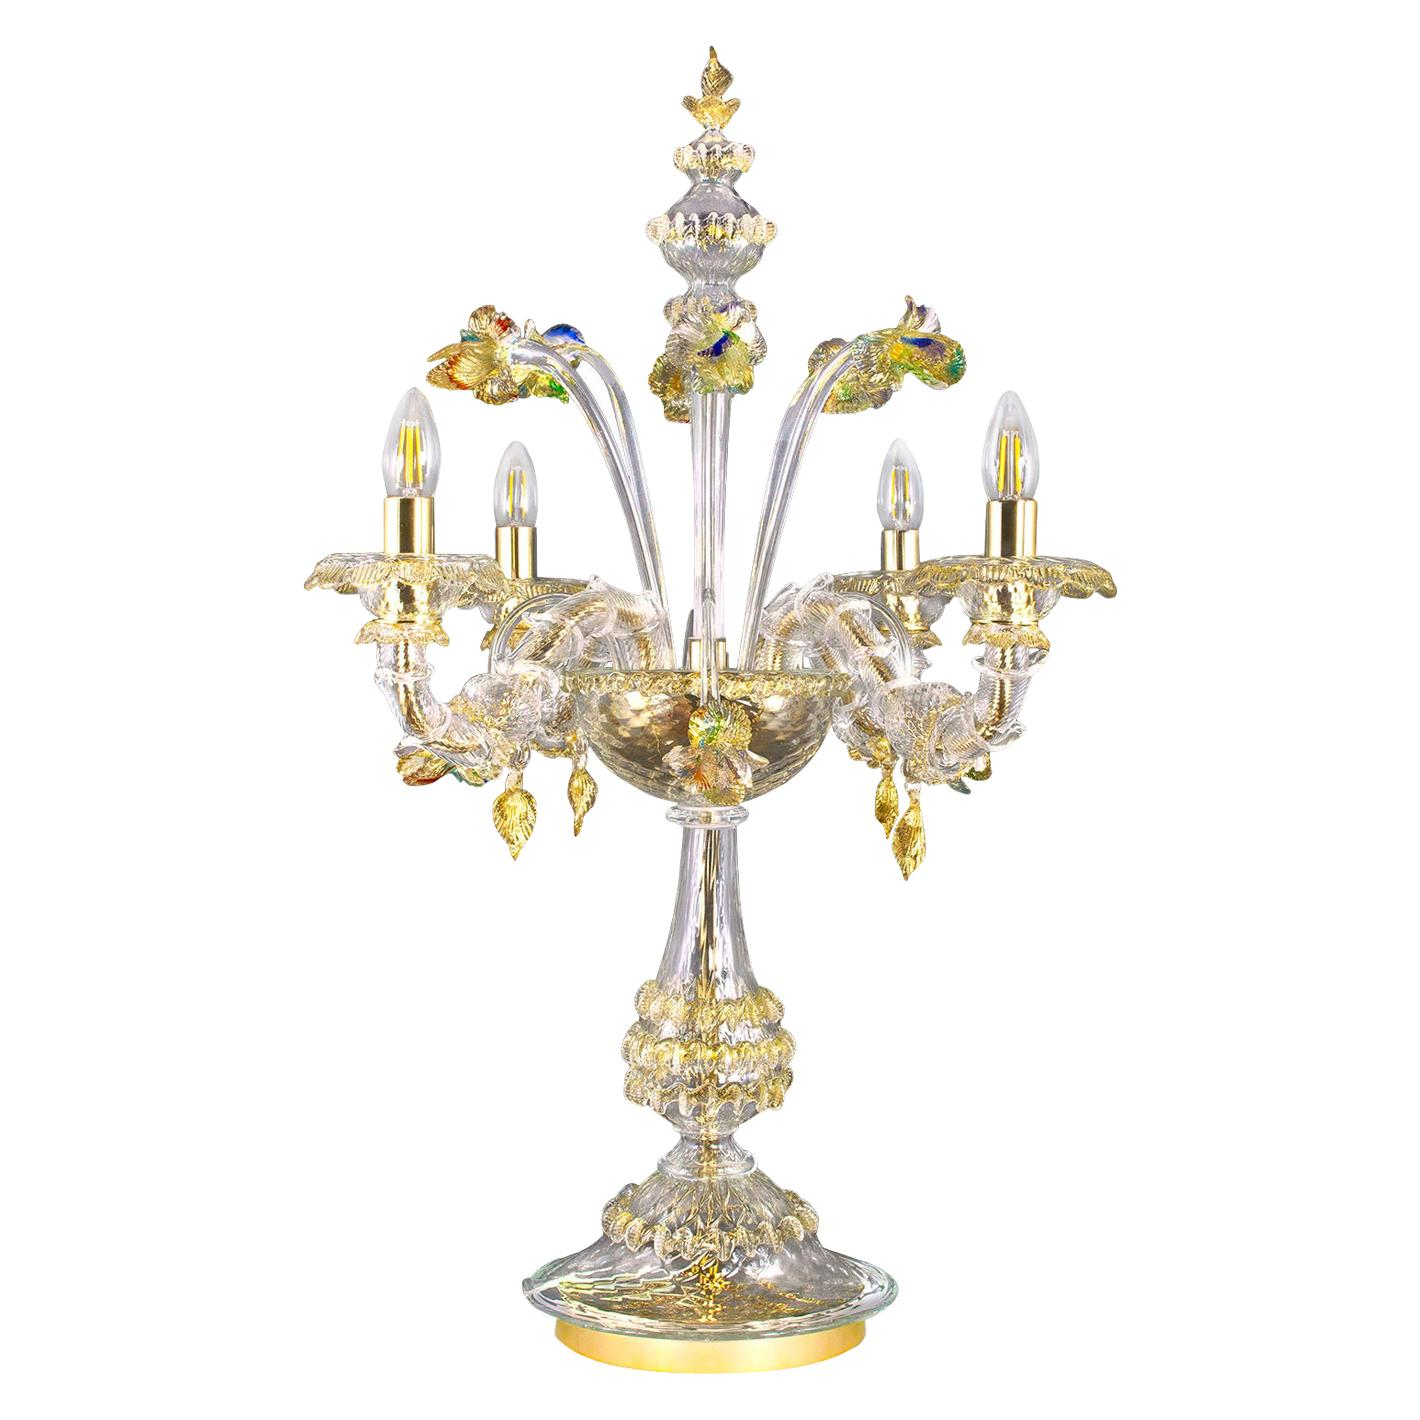 Luxury Rezzonico Flambeau Lamp 4 Arms Clear and Gold Murano Glass by Multiforme